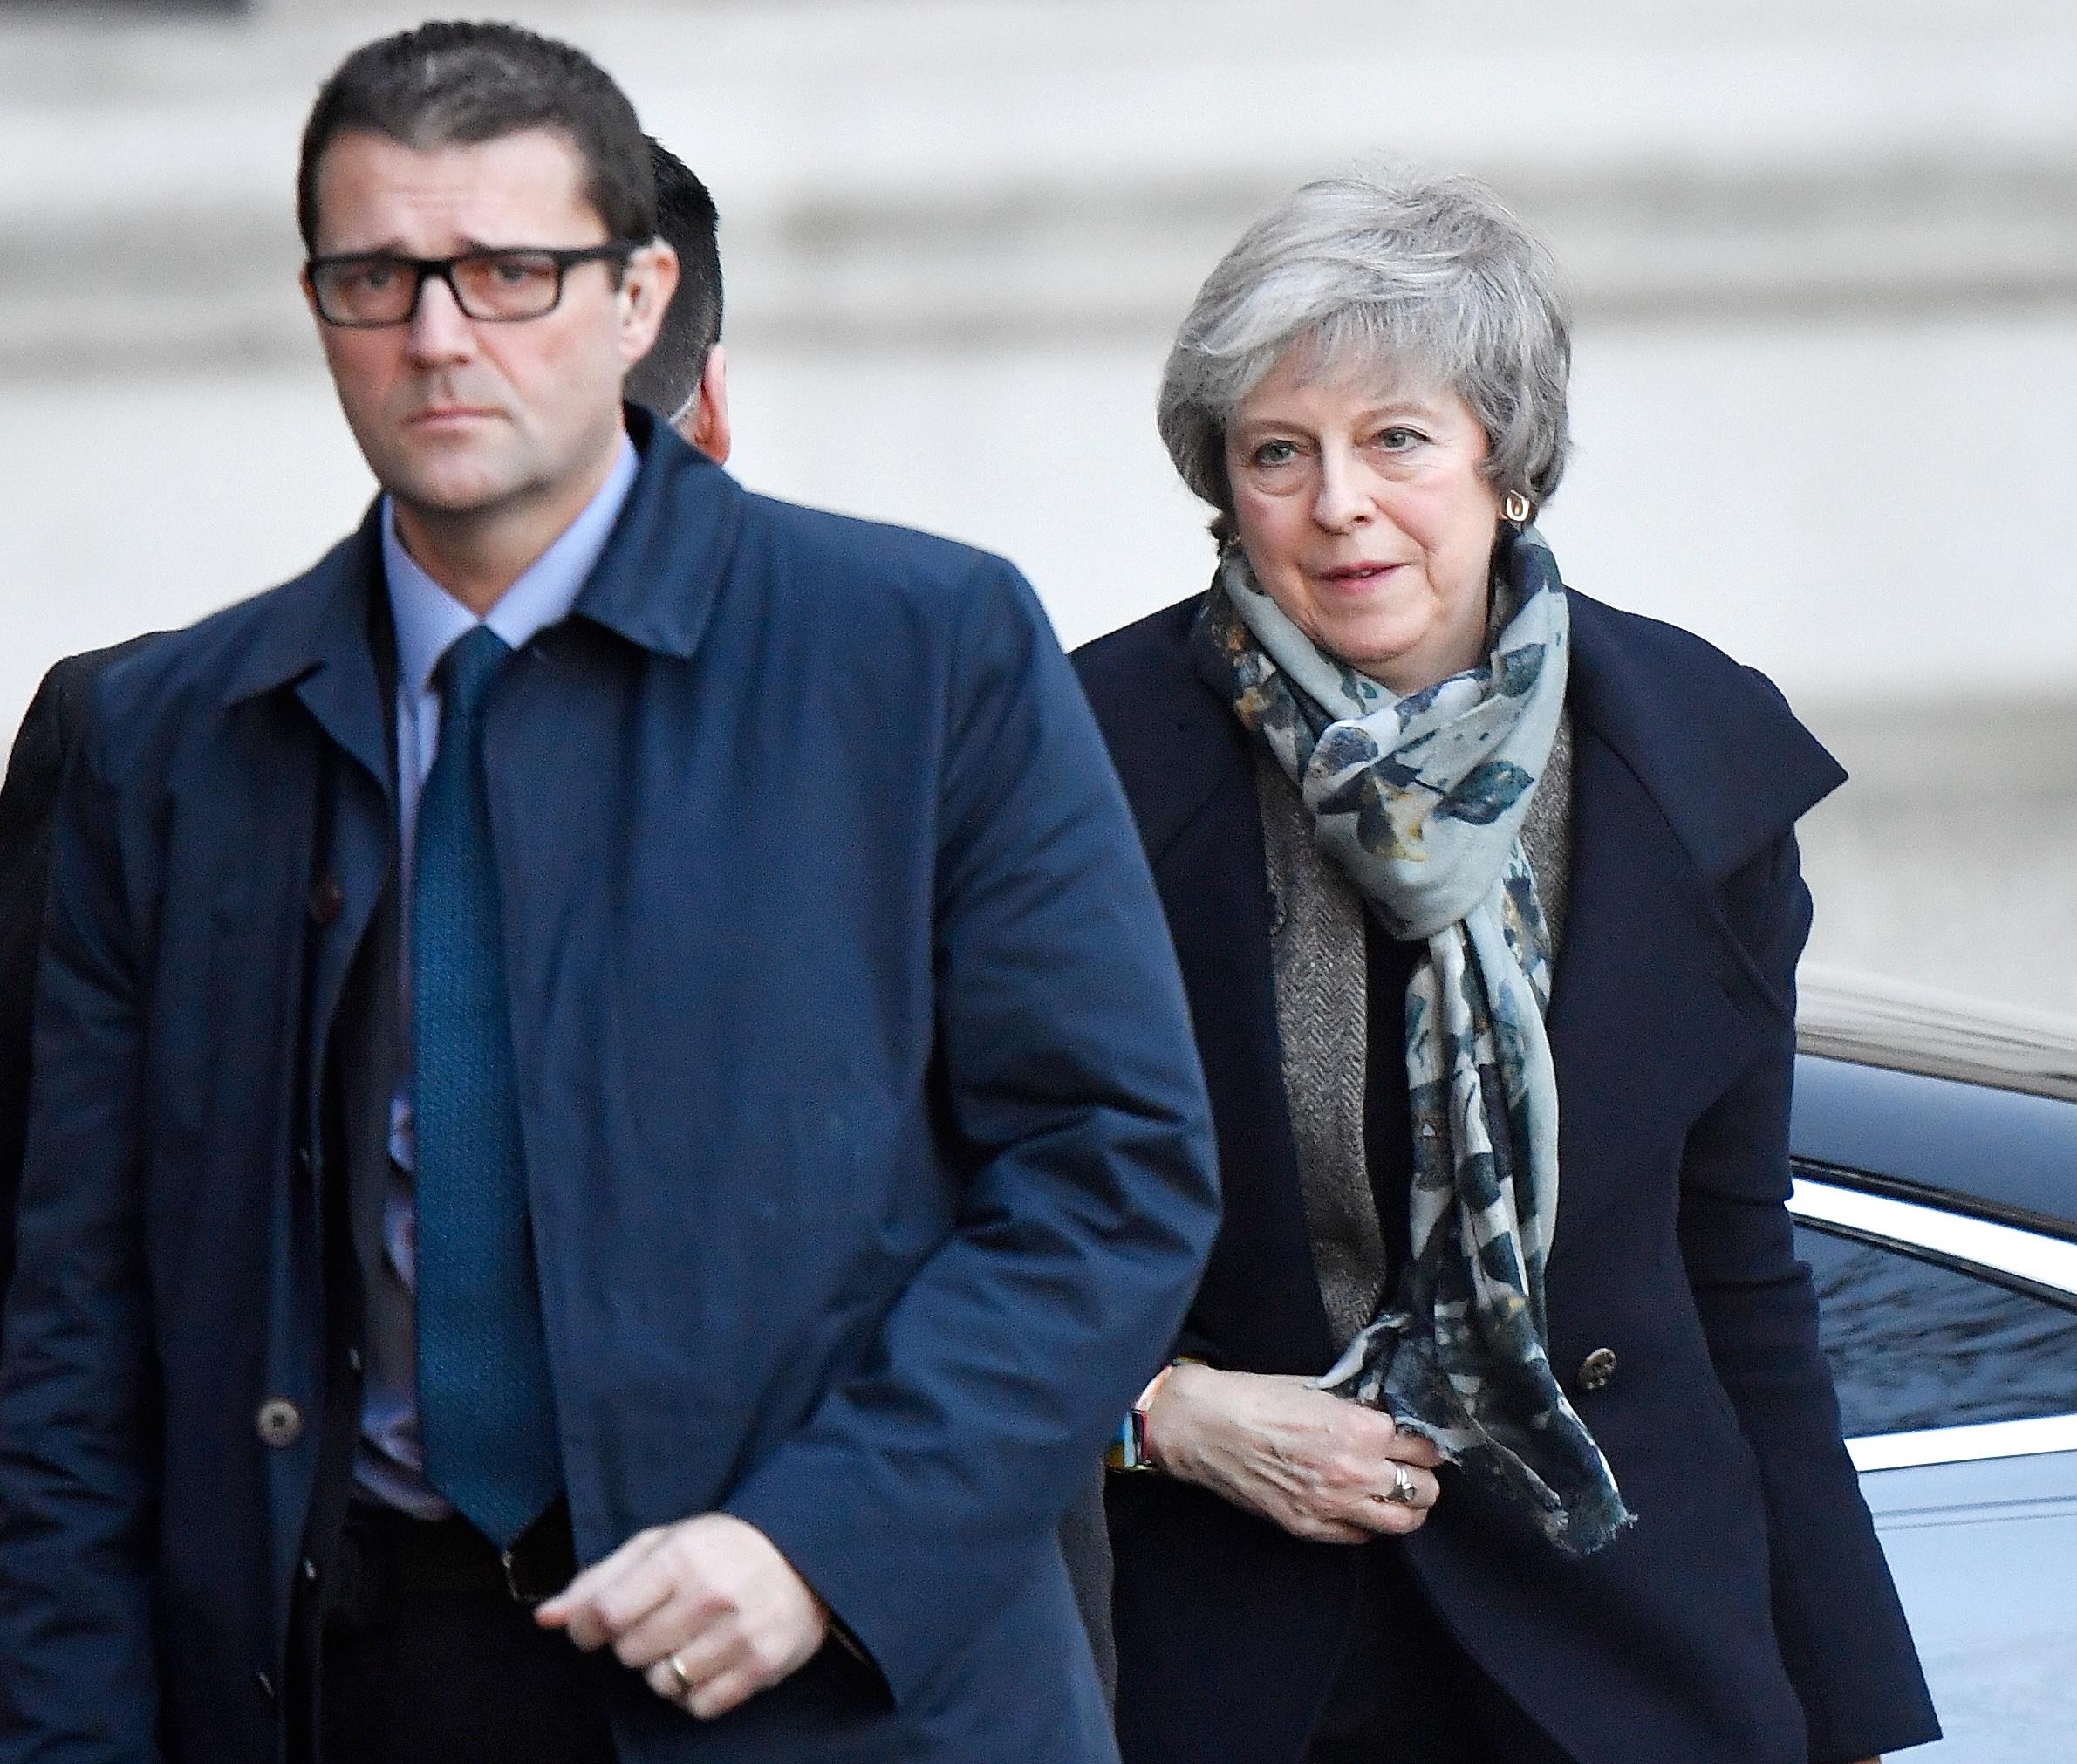 New Brexit vote would 'break faith' with British, says May 2